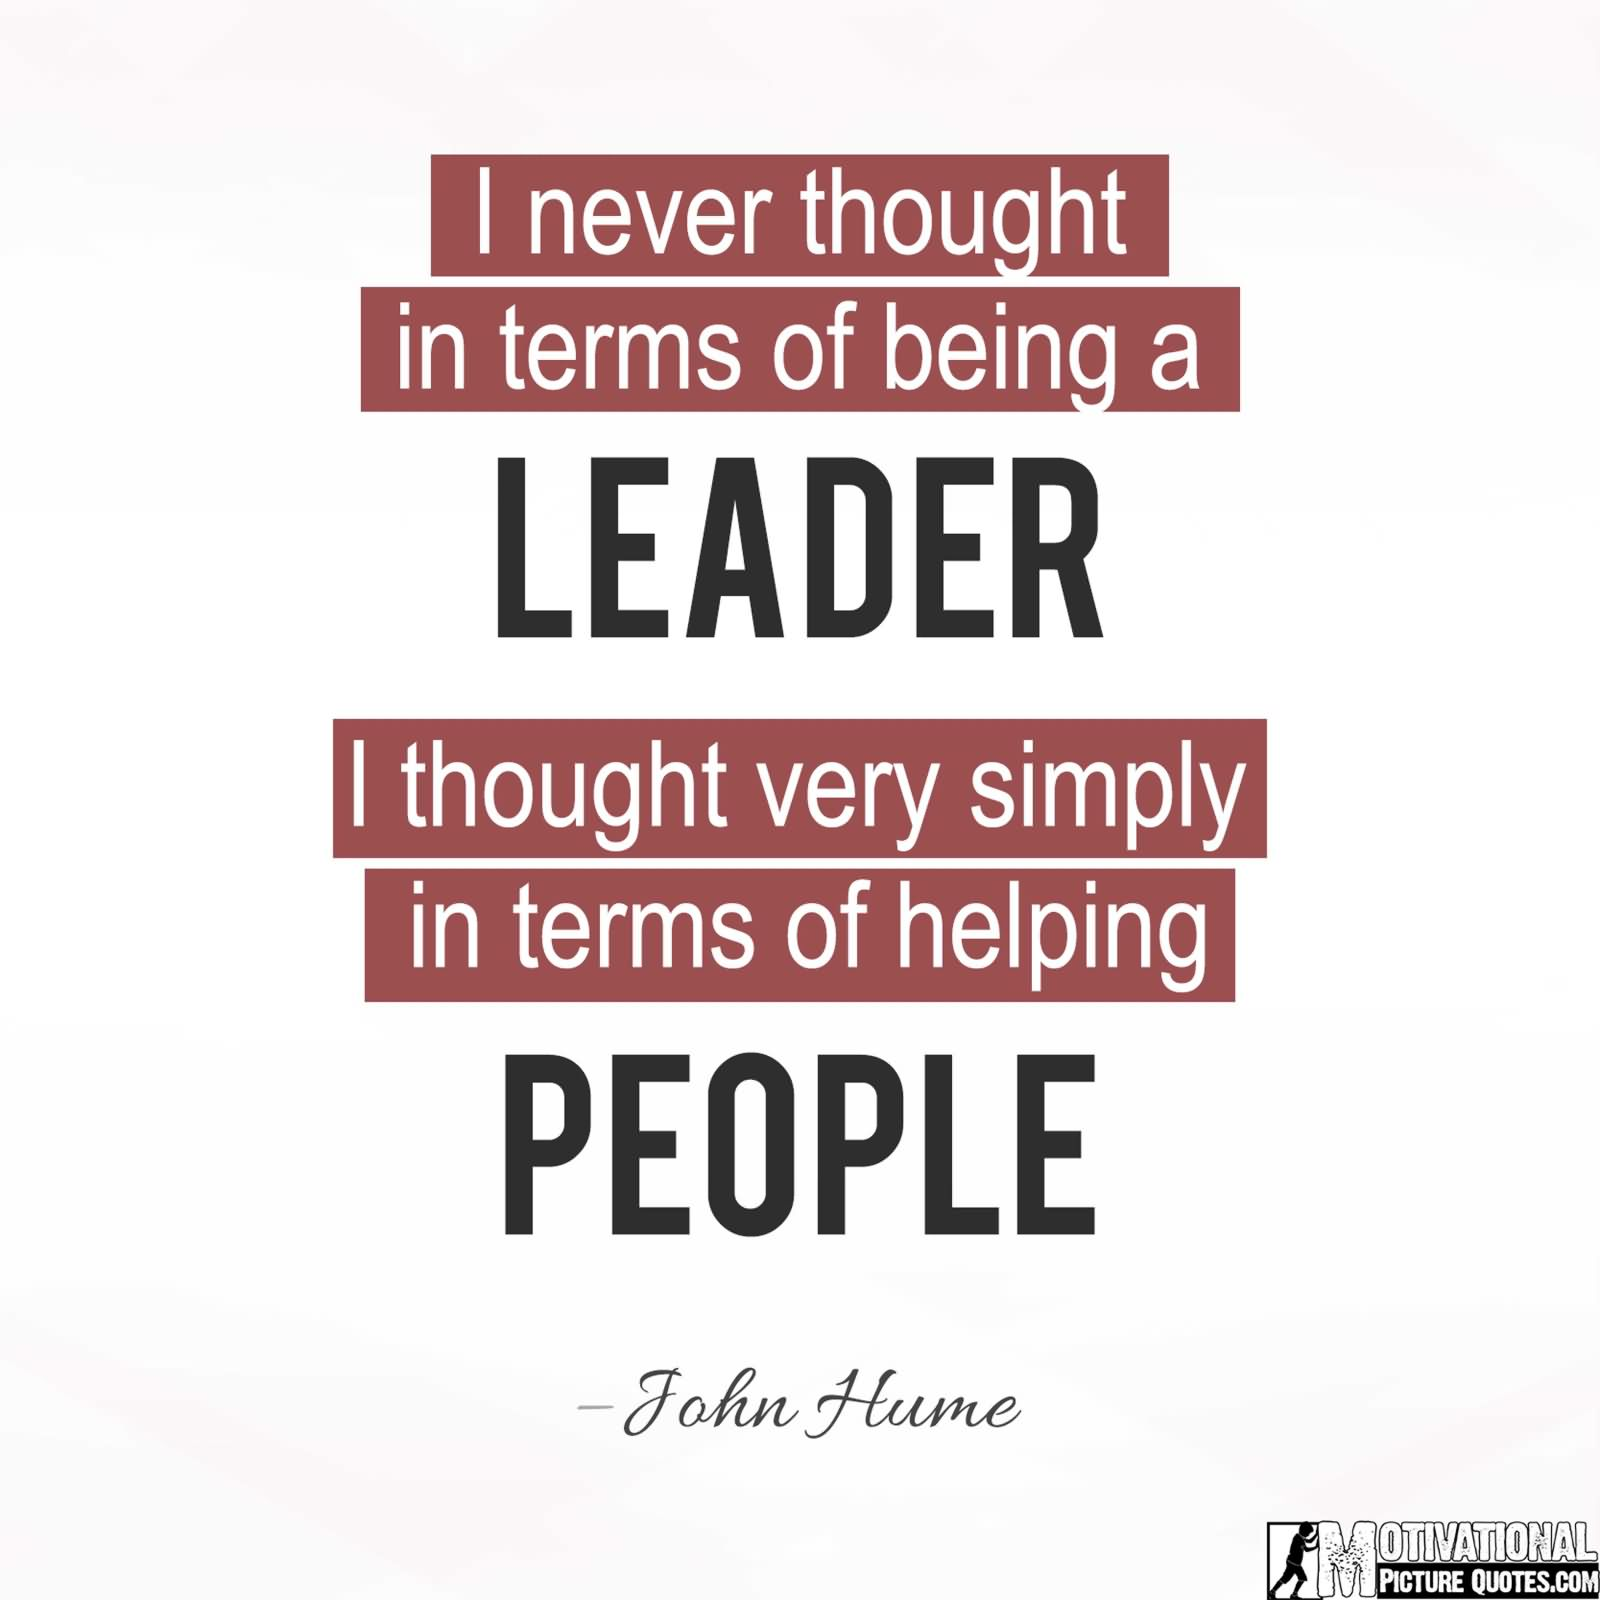 Famous Quotes On Leadership: 75+ Leadership Quotes, Sayings About Leaders